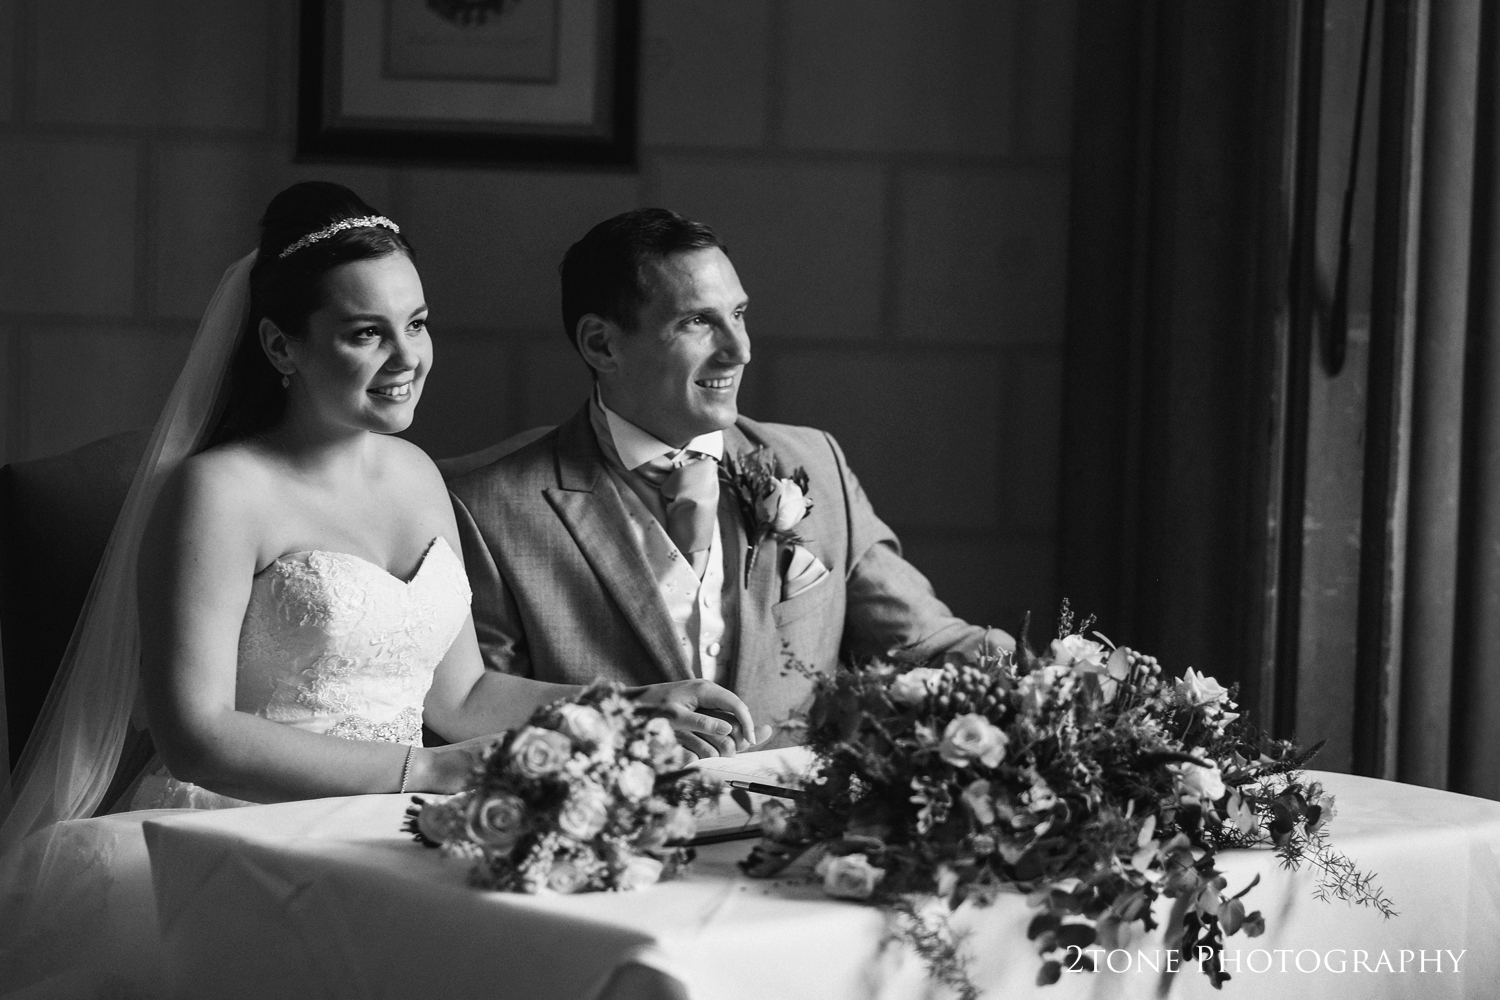 Gorgeous light for Natalie and Russell as they pose for their family and friends.